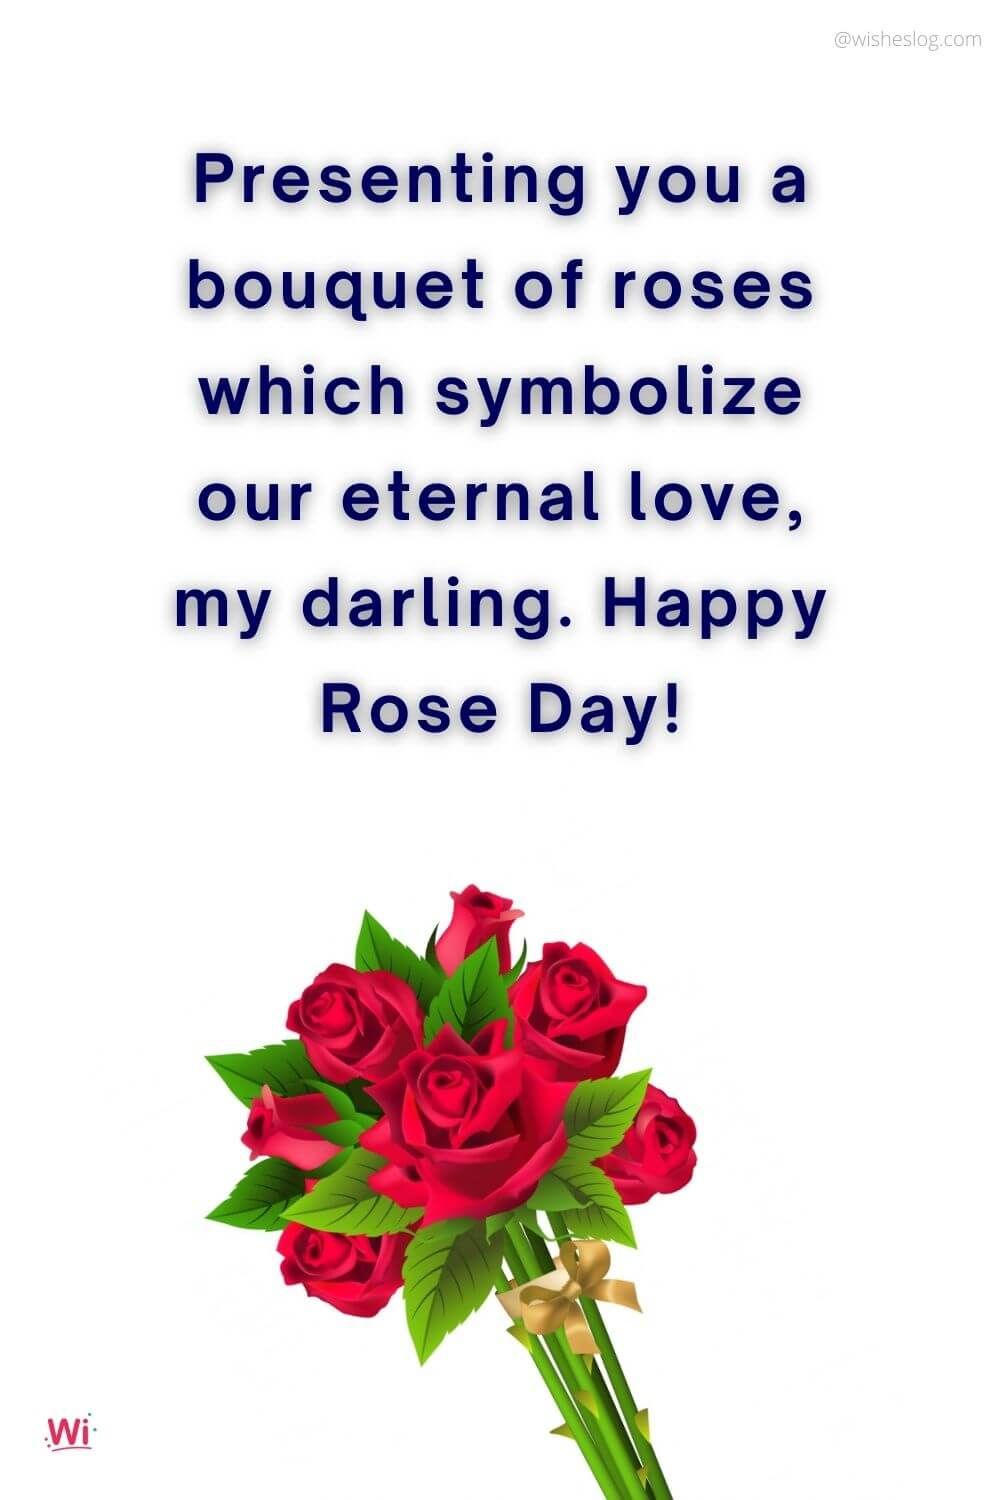 rose day msg for gf